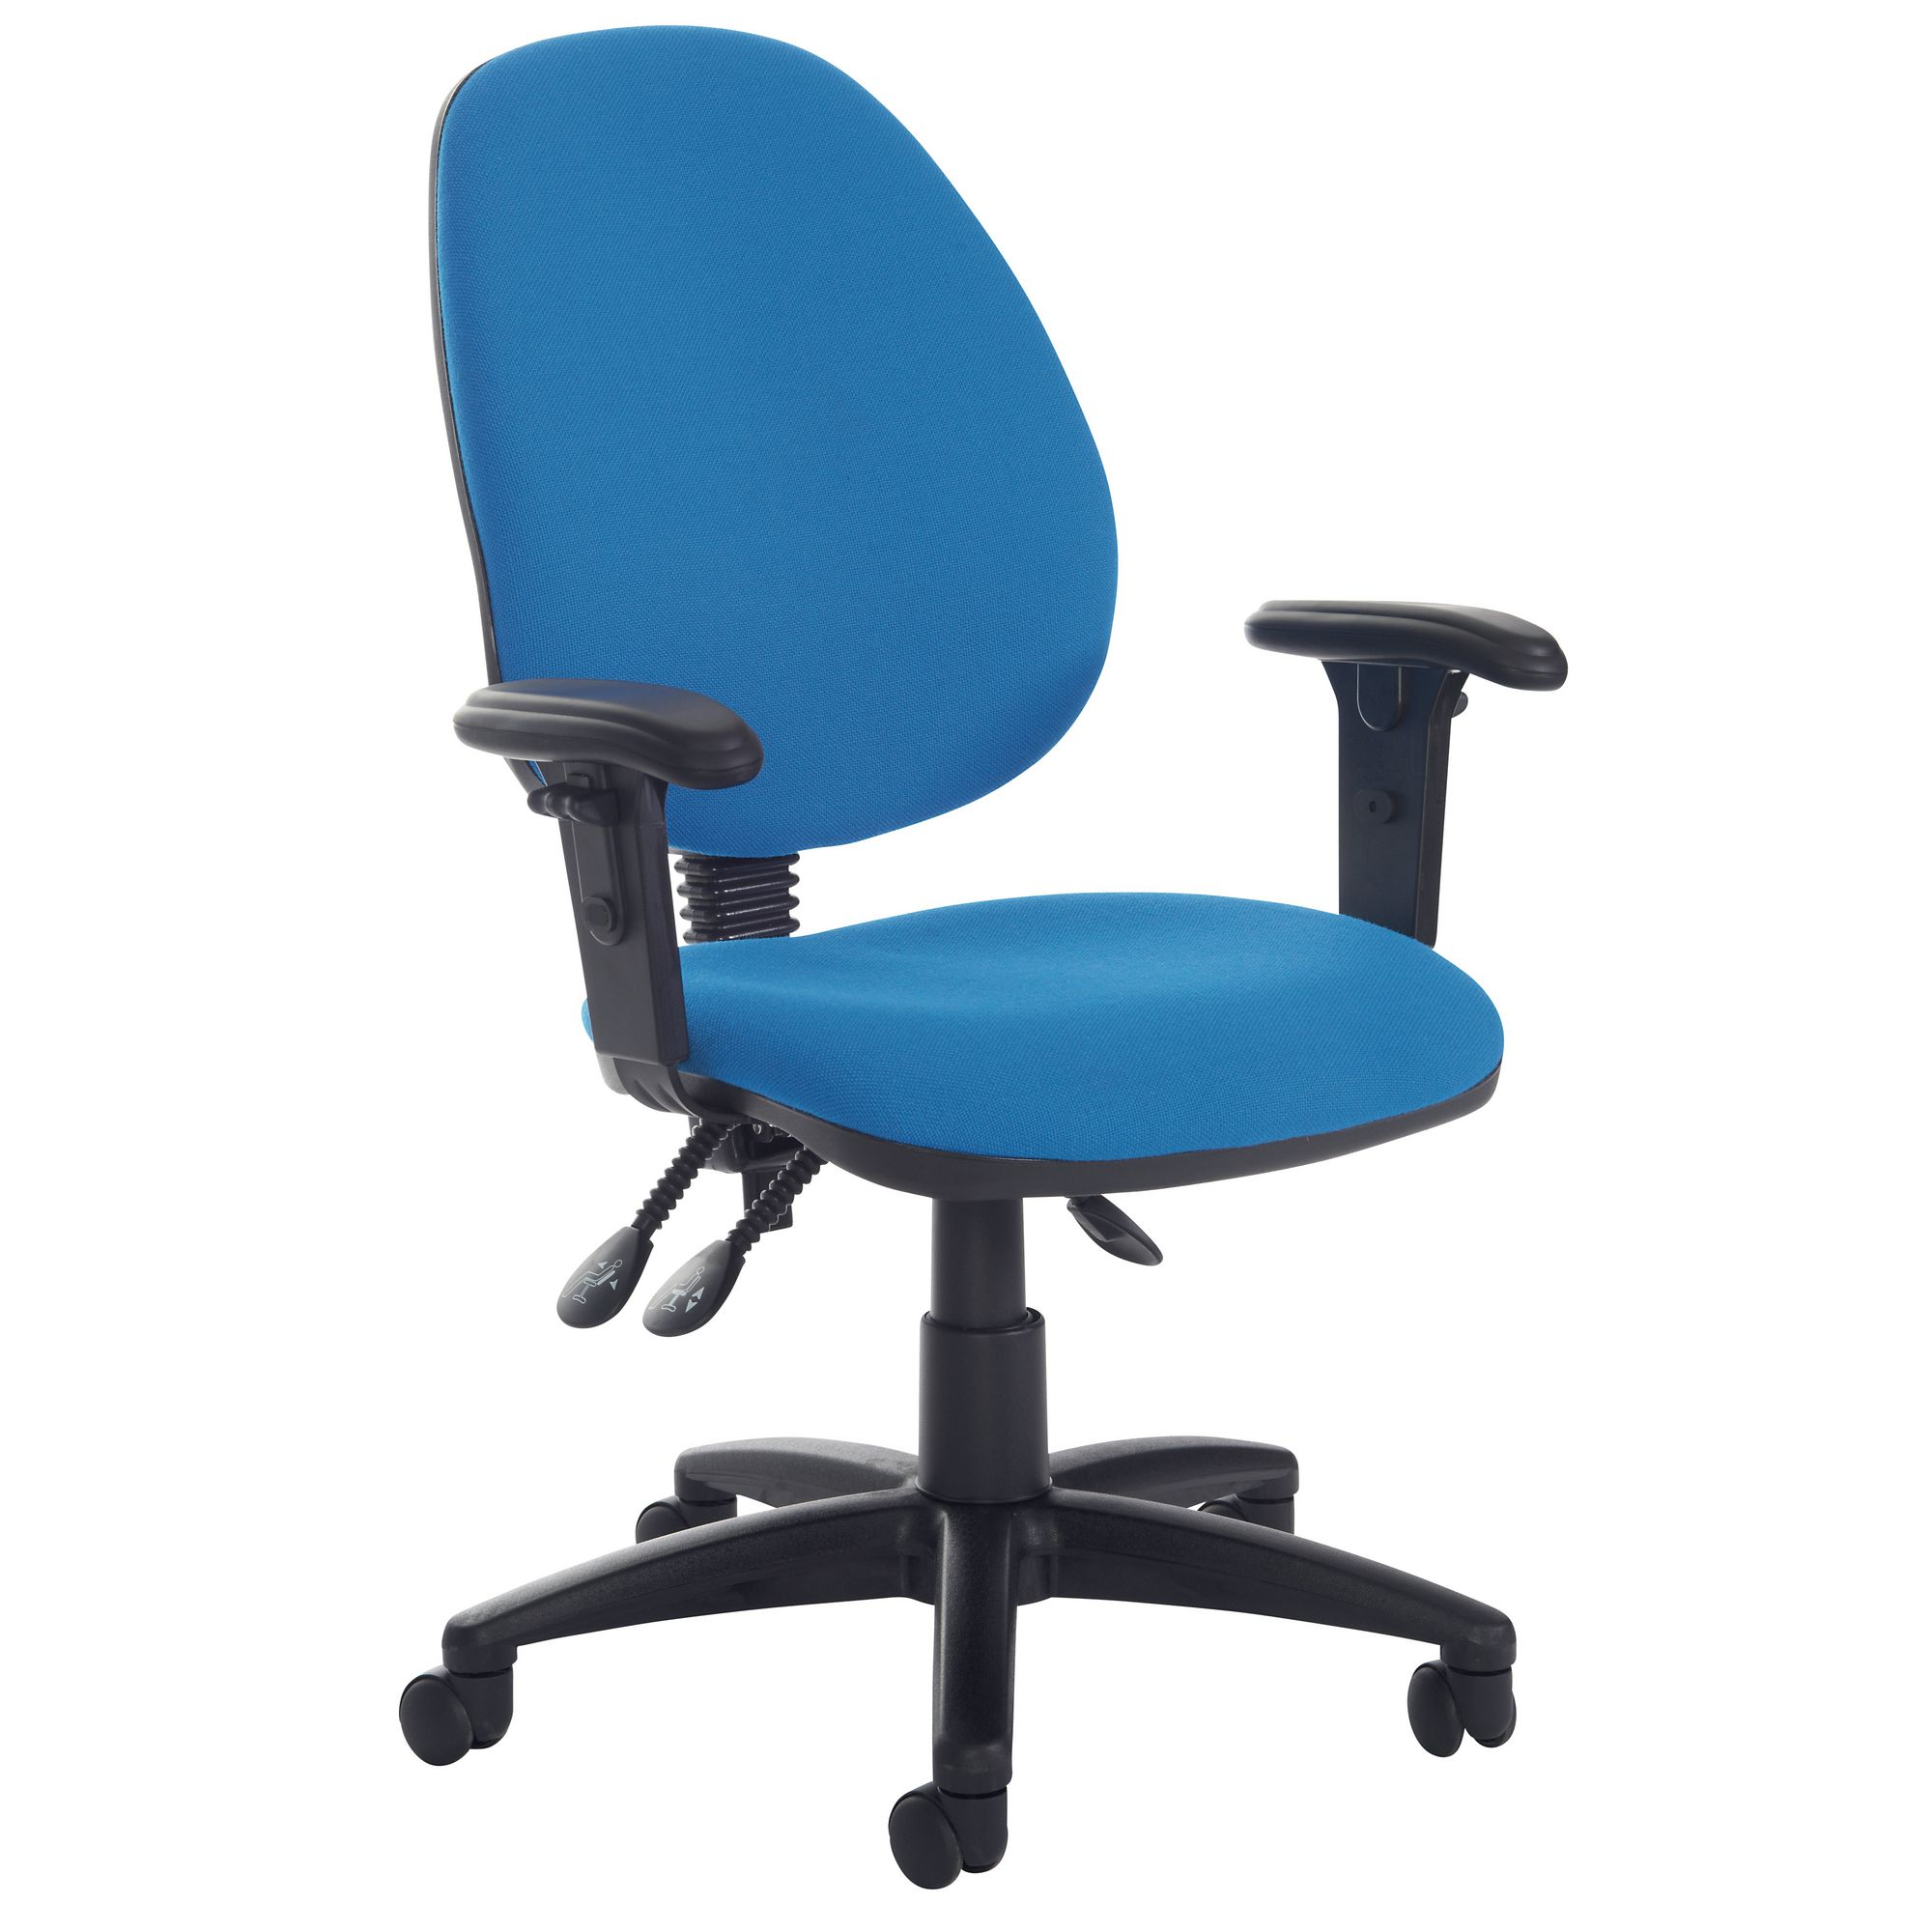 High Back Operator Chair Adjustable Arms Blue GLS